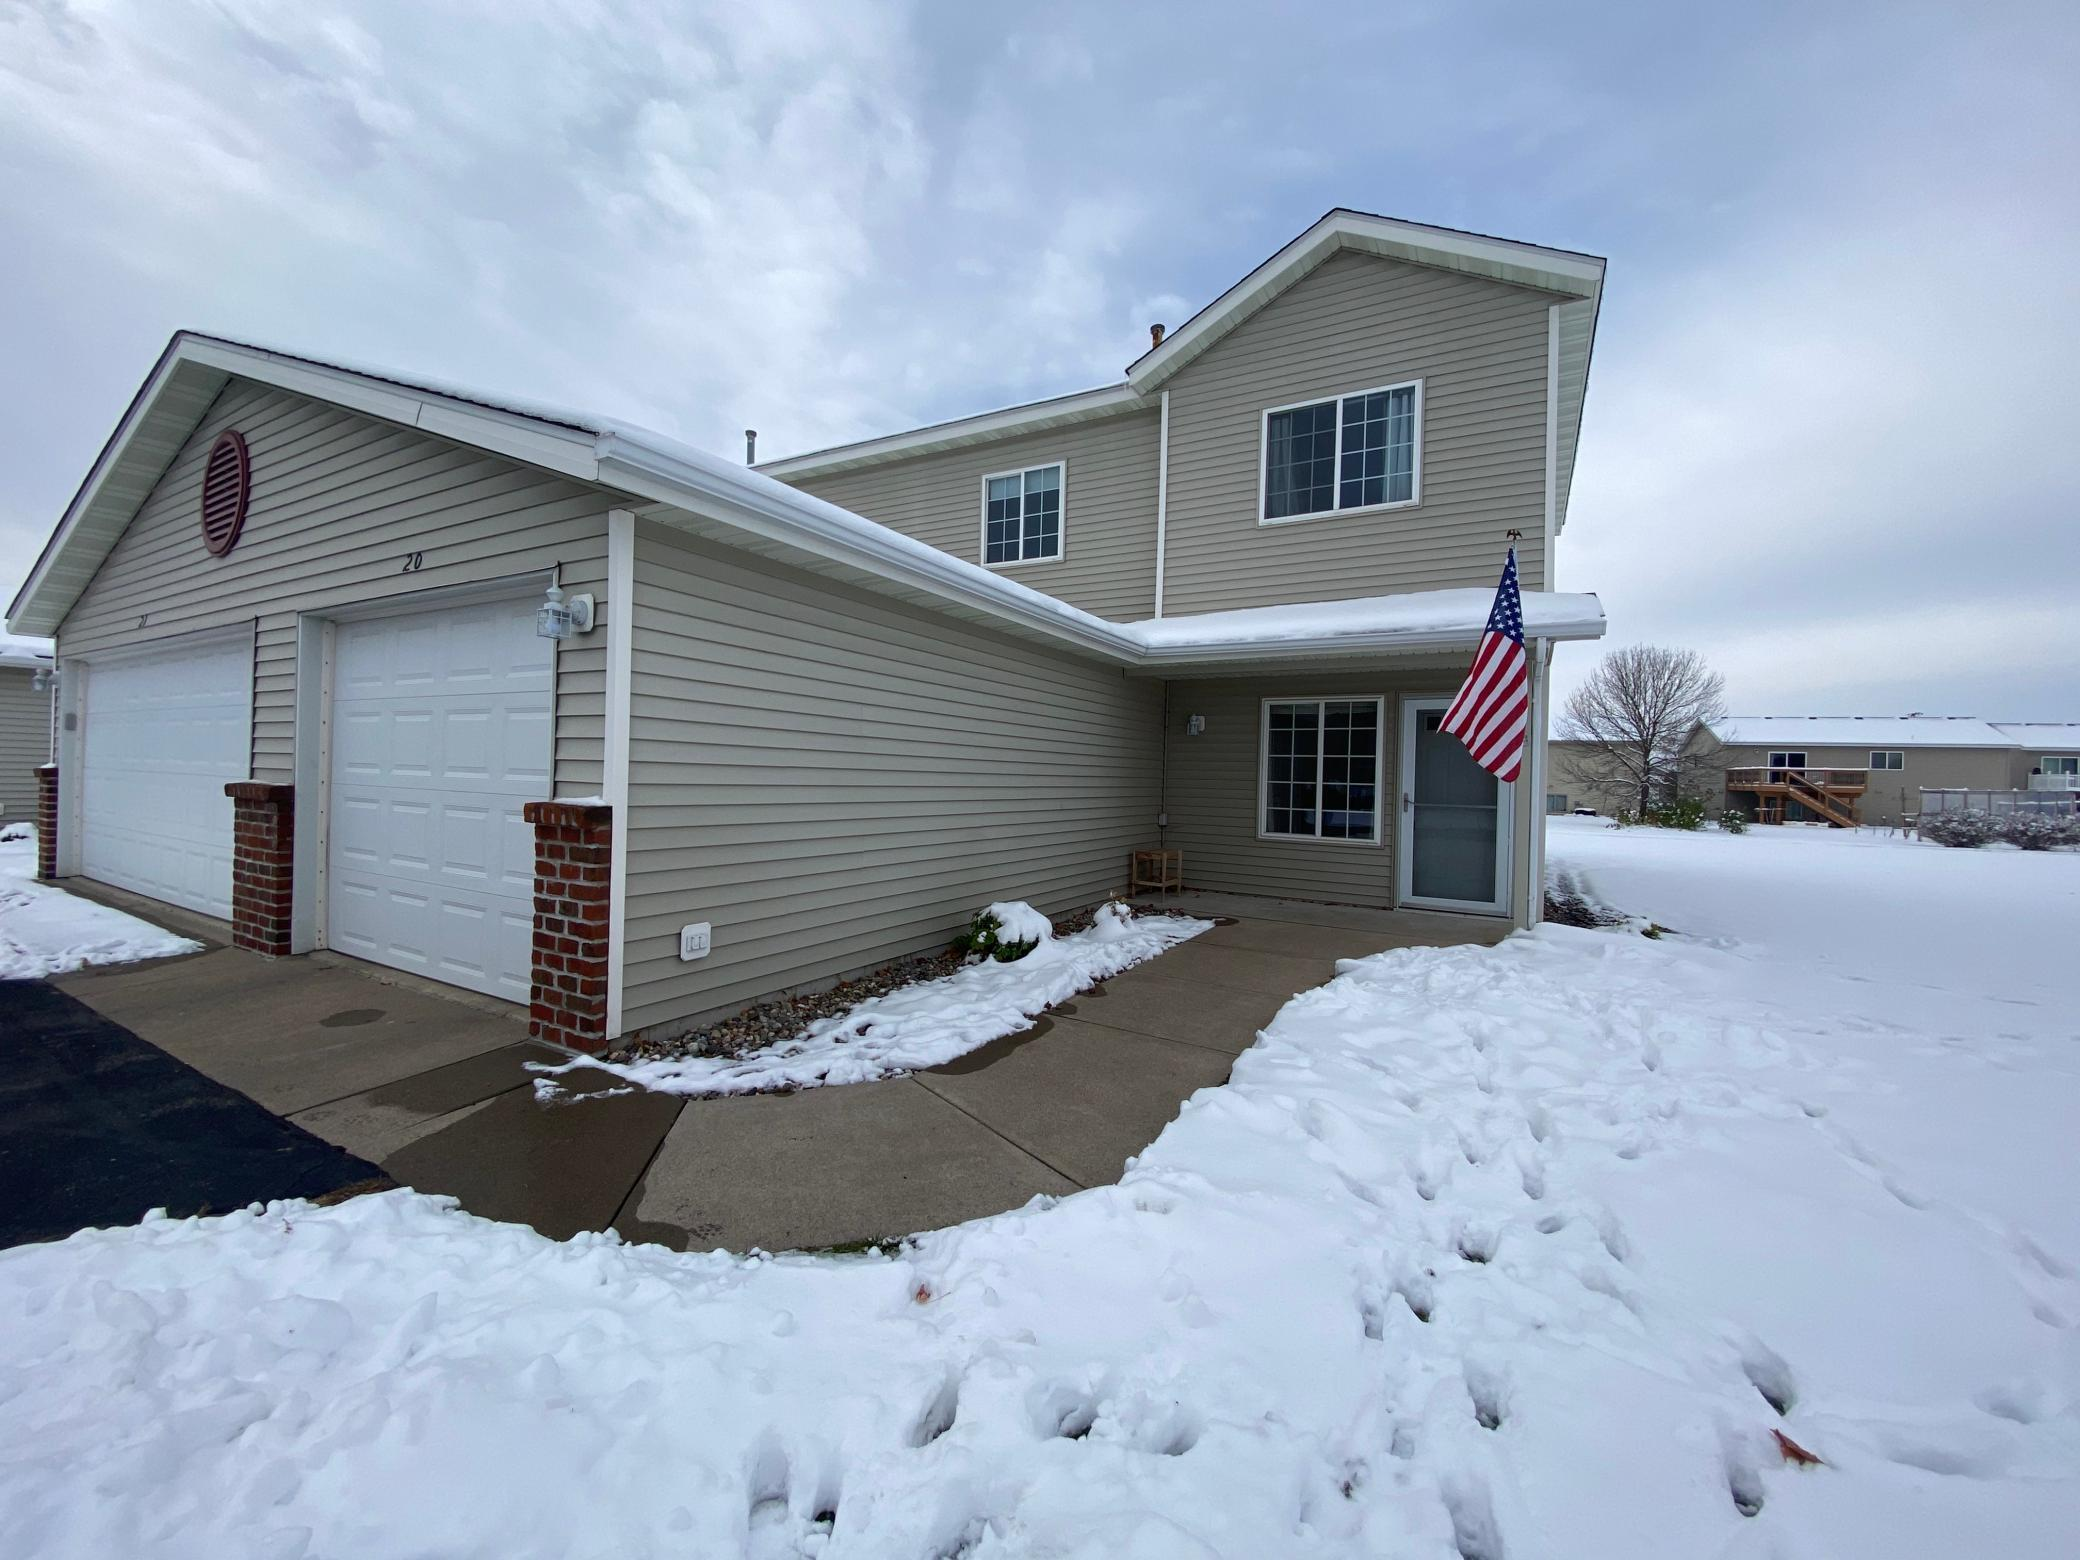 Great Town Home on popular West side of Saint Cloud! End unit now available with walking trail and parks. Step into an inviting foyer with front coat closet and windows with beaming natural light. Main level design features open living concepts with living room, kitchen with abundance of cabinets and breakfast bar, and dining area. Pantry off of kitchen, 1/2 bath, utility closet and garage access. Living room with patio door to back patio overlooking walking trails. Upper level with full bathroom, linen closet just outside the bath area, laundry closet, and 3 upper level bedrooms including master with walk-in closet. Ease of living, amenities, and quick closing possible makes this home a perfect option!